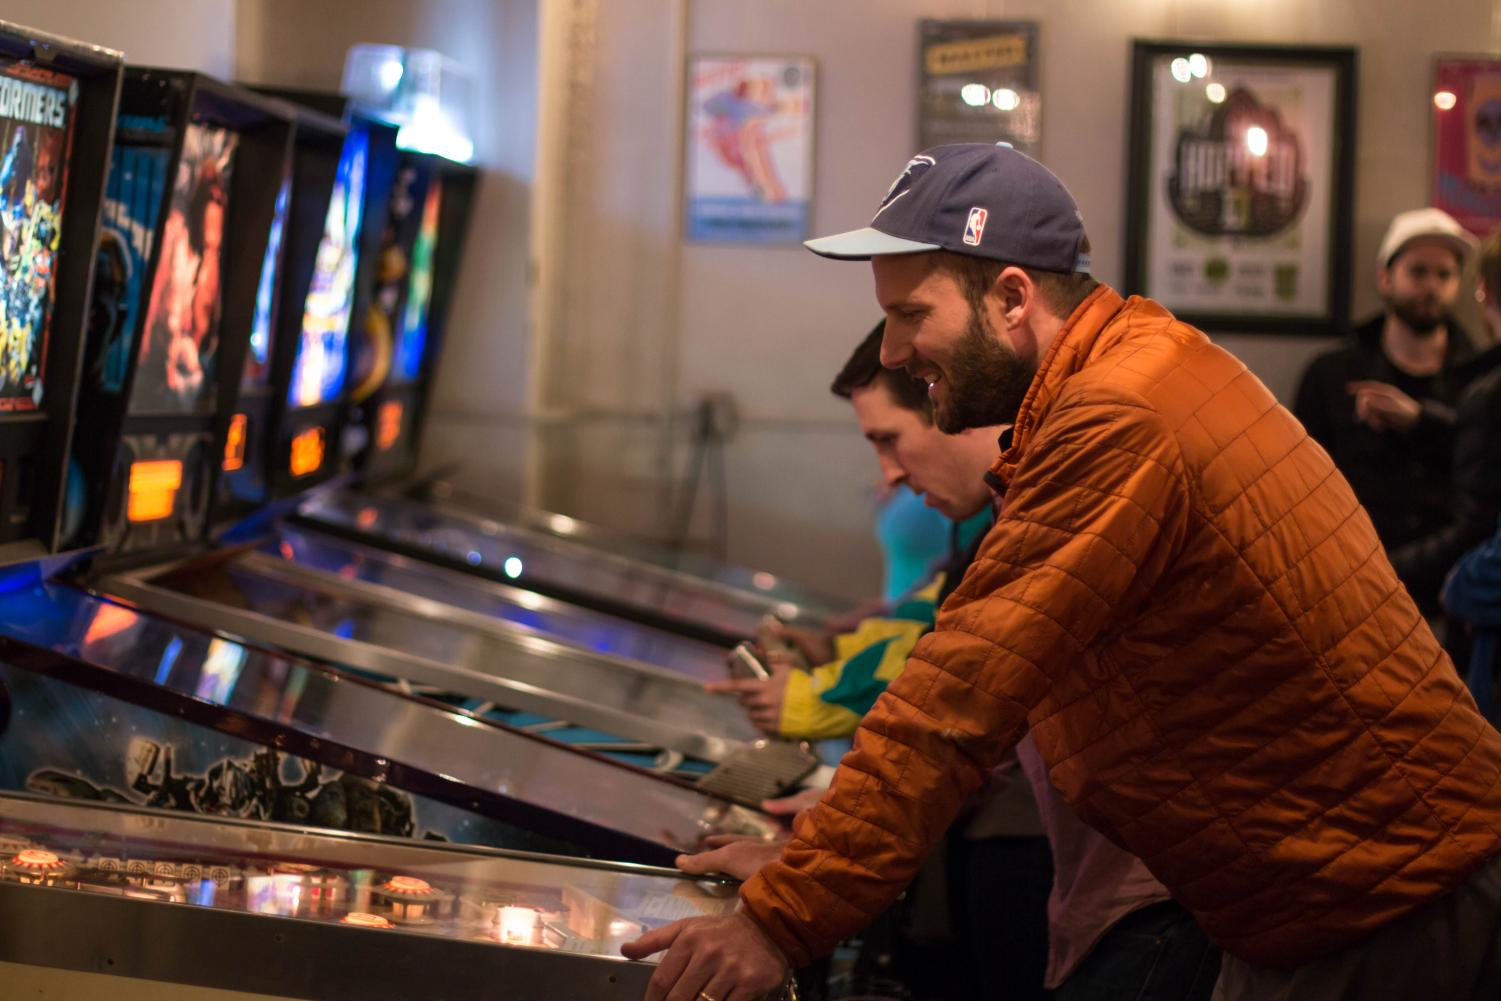 Mr. Sullivan focuses his attention on victory over his opponents. He started playing pinball as a college student in Santa Barbara, Calif. and has loved the game ever since.